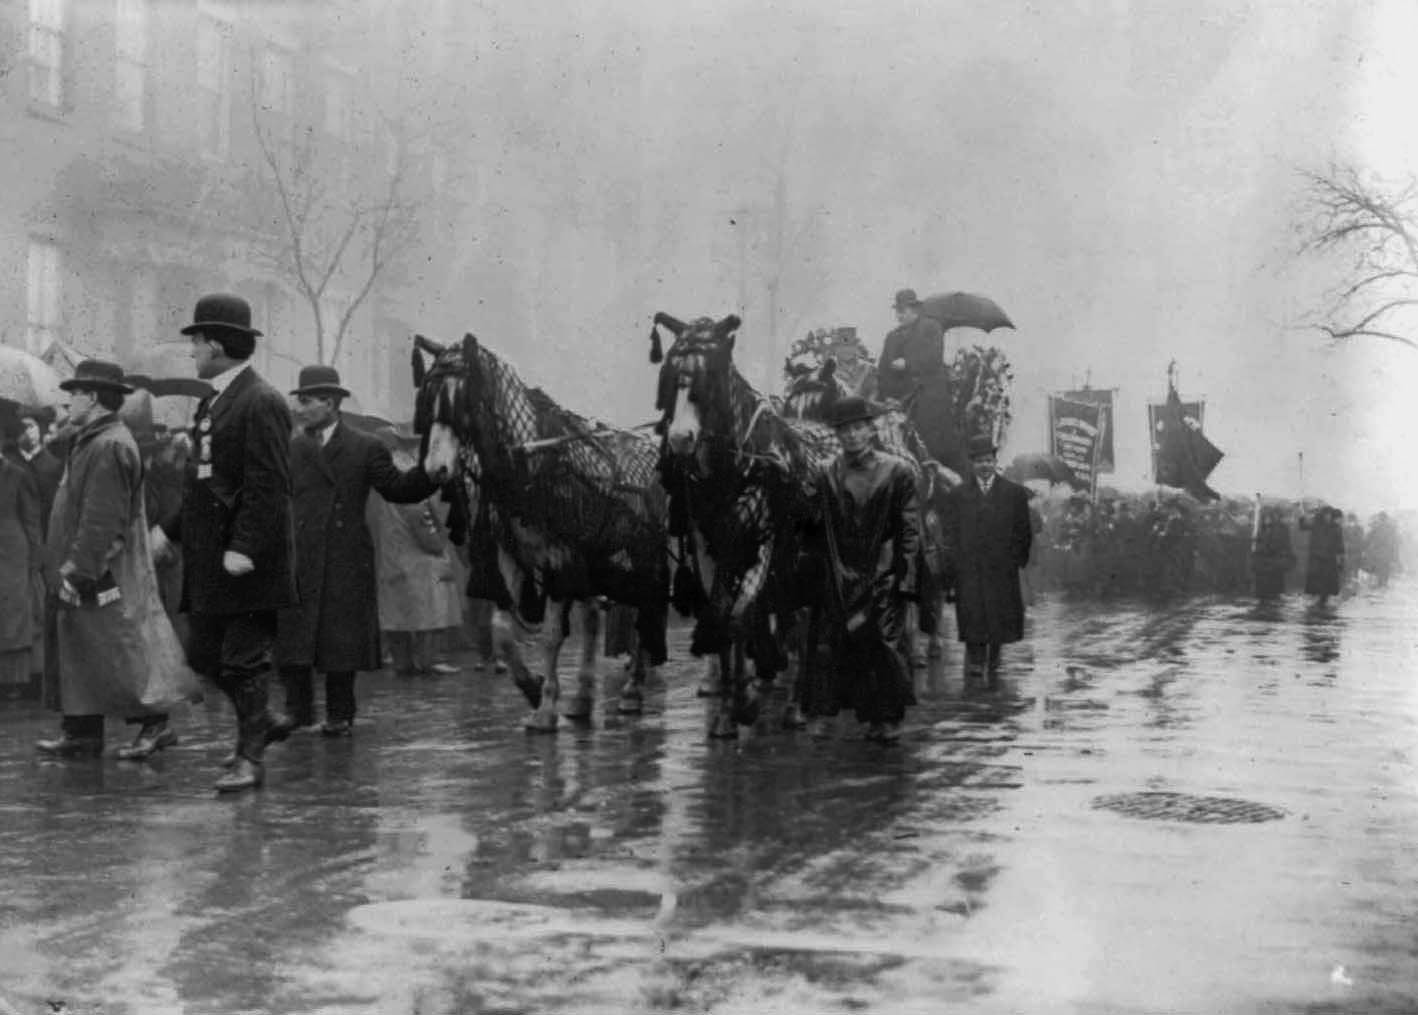 the triangle fire essay Triangle fire essay on a late saturday afternoon in the year 1911, a horrific fire began at the triangle shirtwaist factory in new york city in which over a hundred and thirty women died.